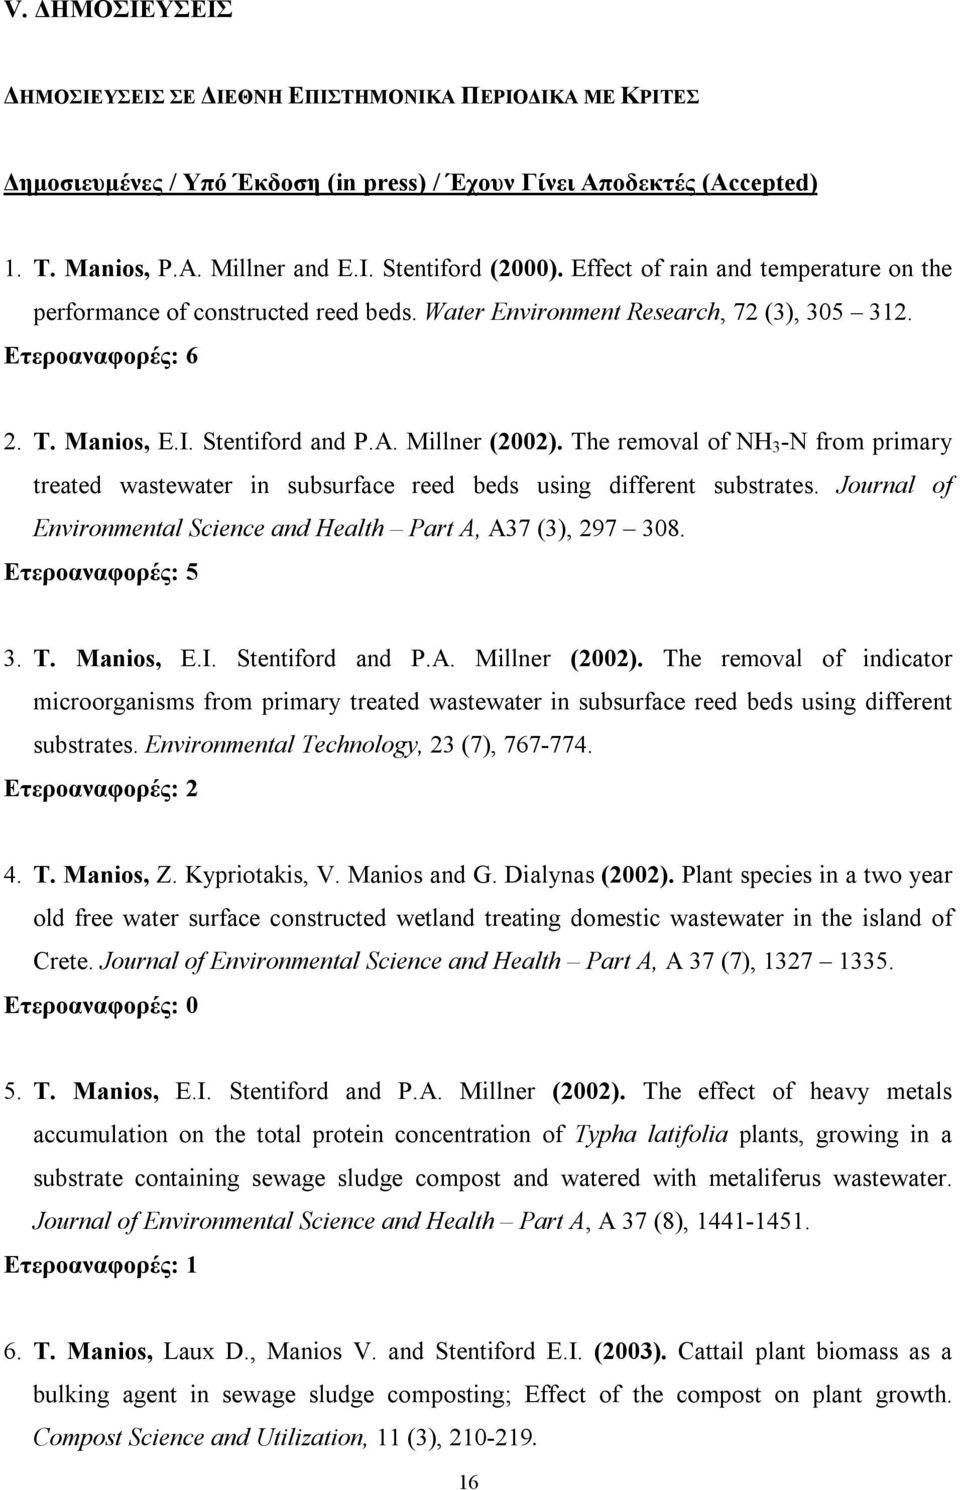 The removal of NH 3 -N from primary treated wastewater in subsurface reed beds using different substrates. Journal of Environmental Science and Health Part A, A37 (3), 297 308. Ετεροαναφορές: 5 3. T.